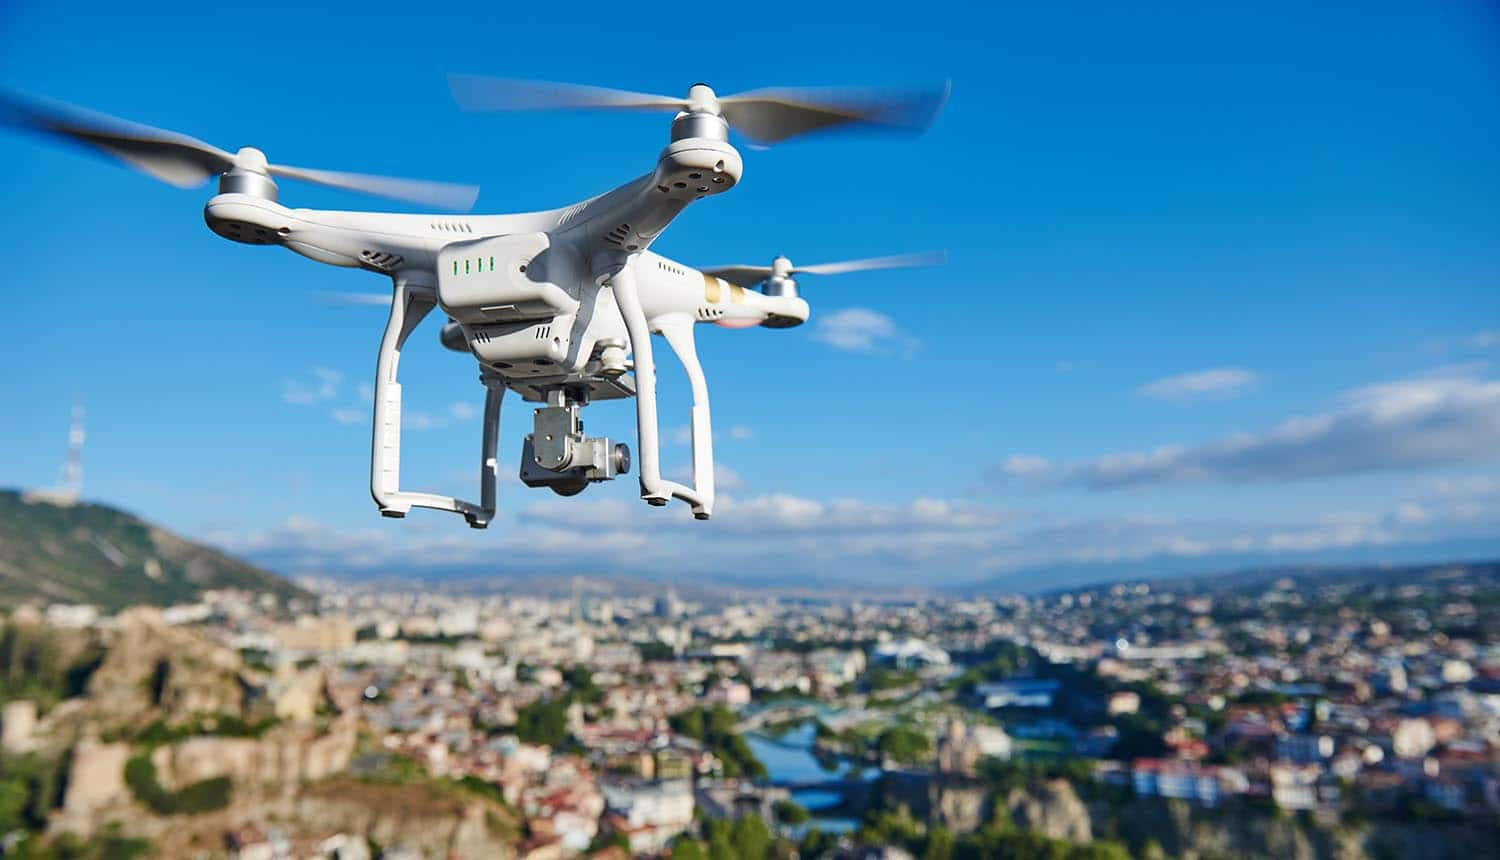 Eye in the Sky – Drone Surveillance and Privacy